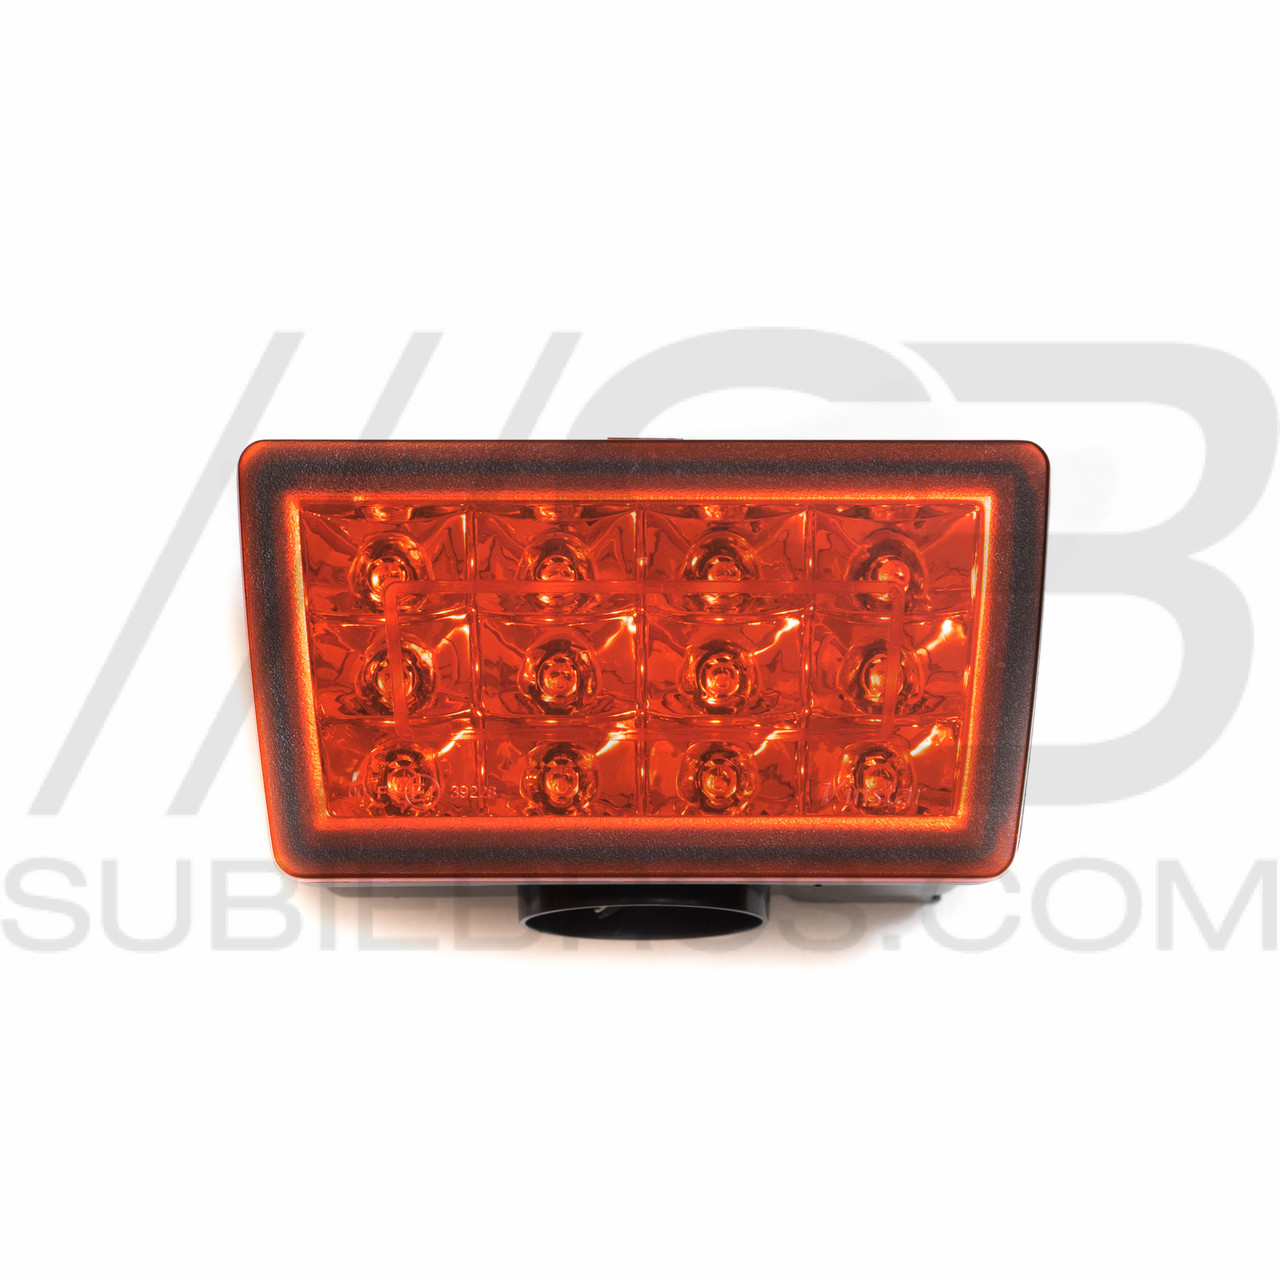 small resolution of f1 style led rear fog light red clear red smoked matte black subie bros